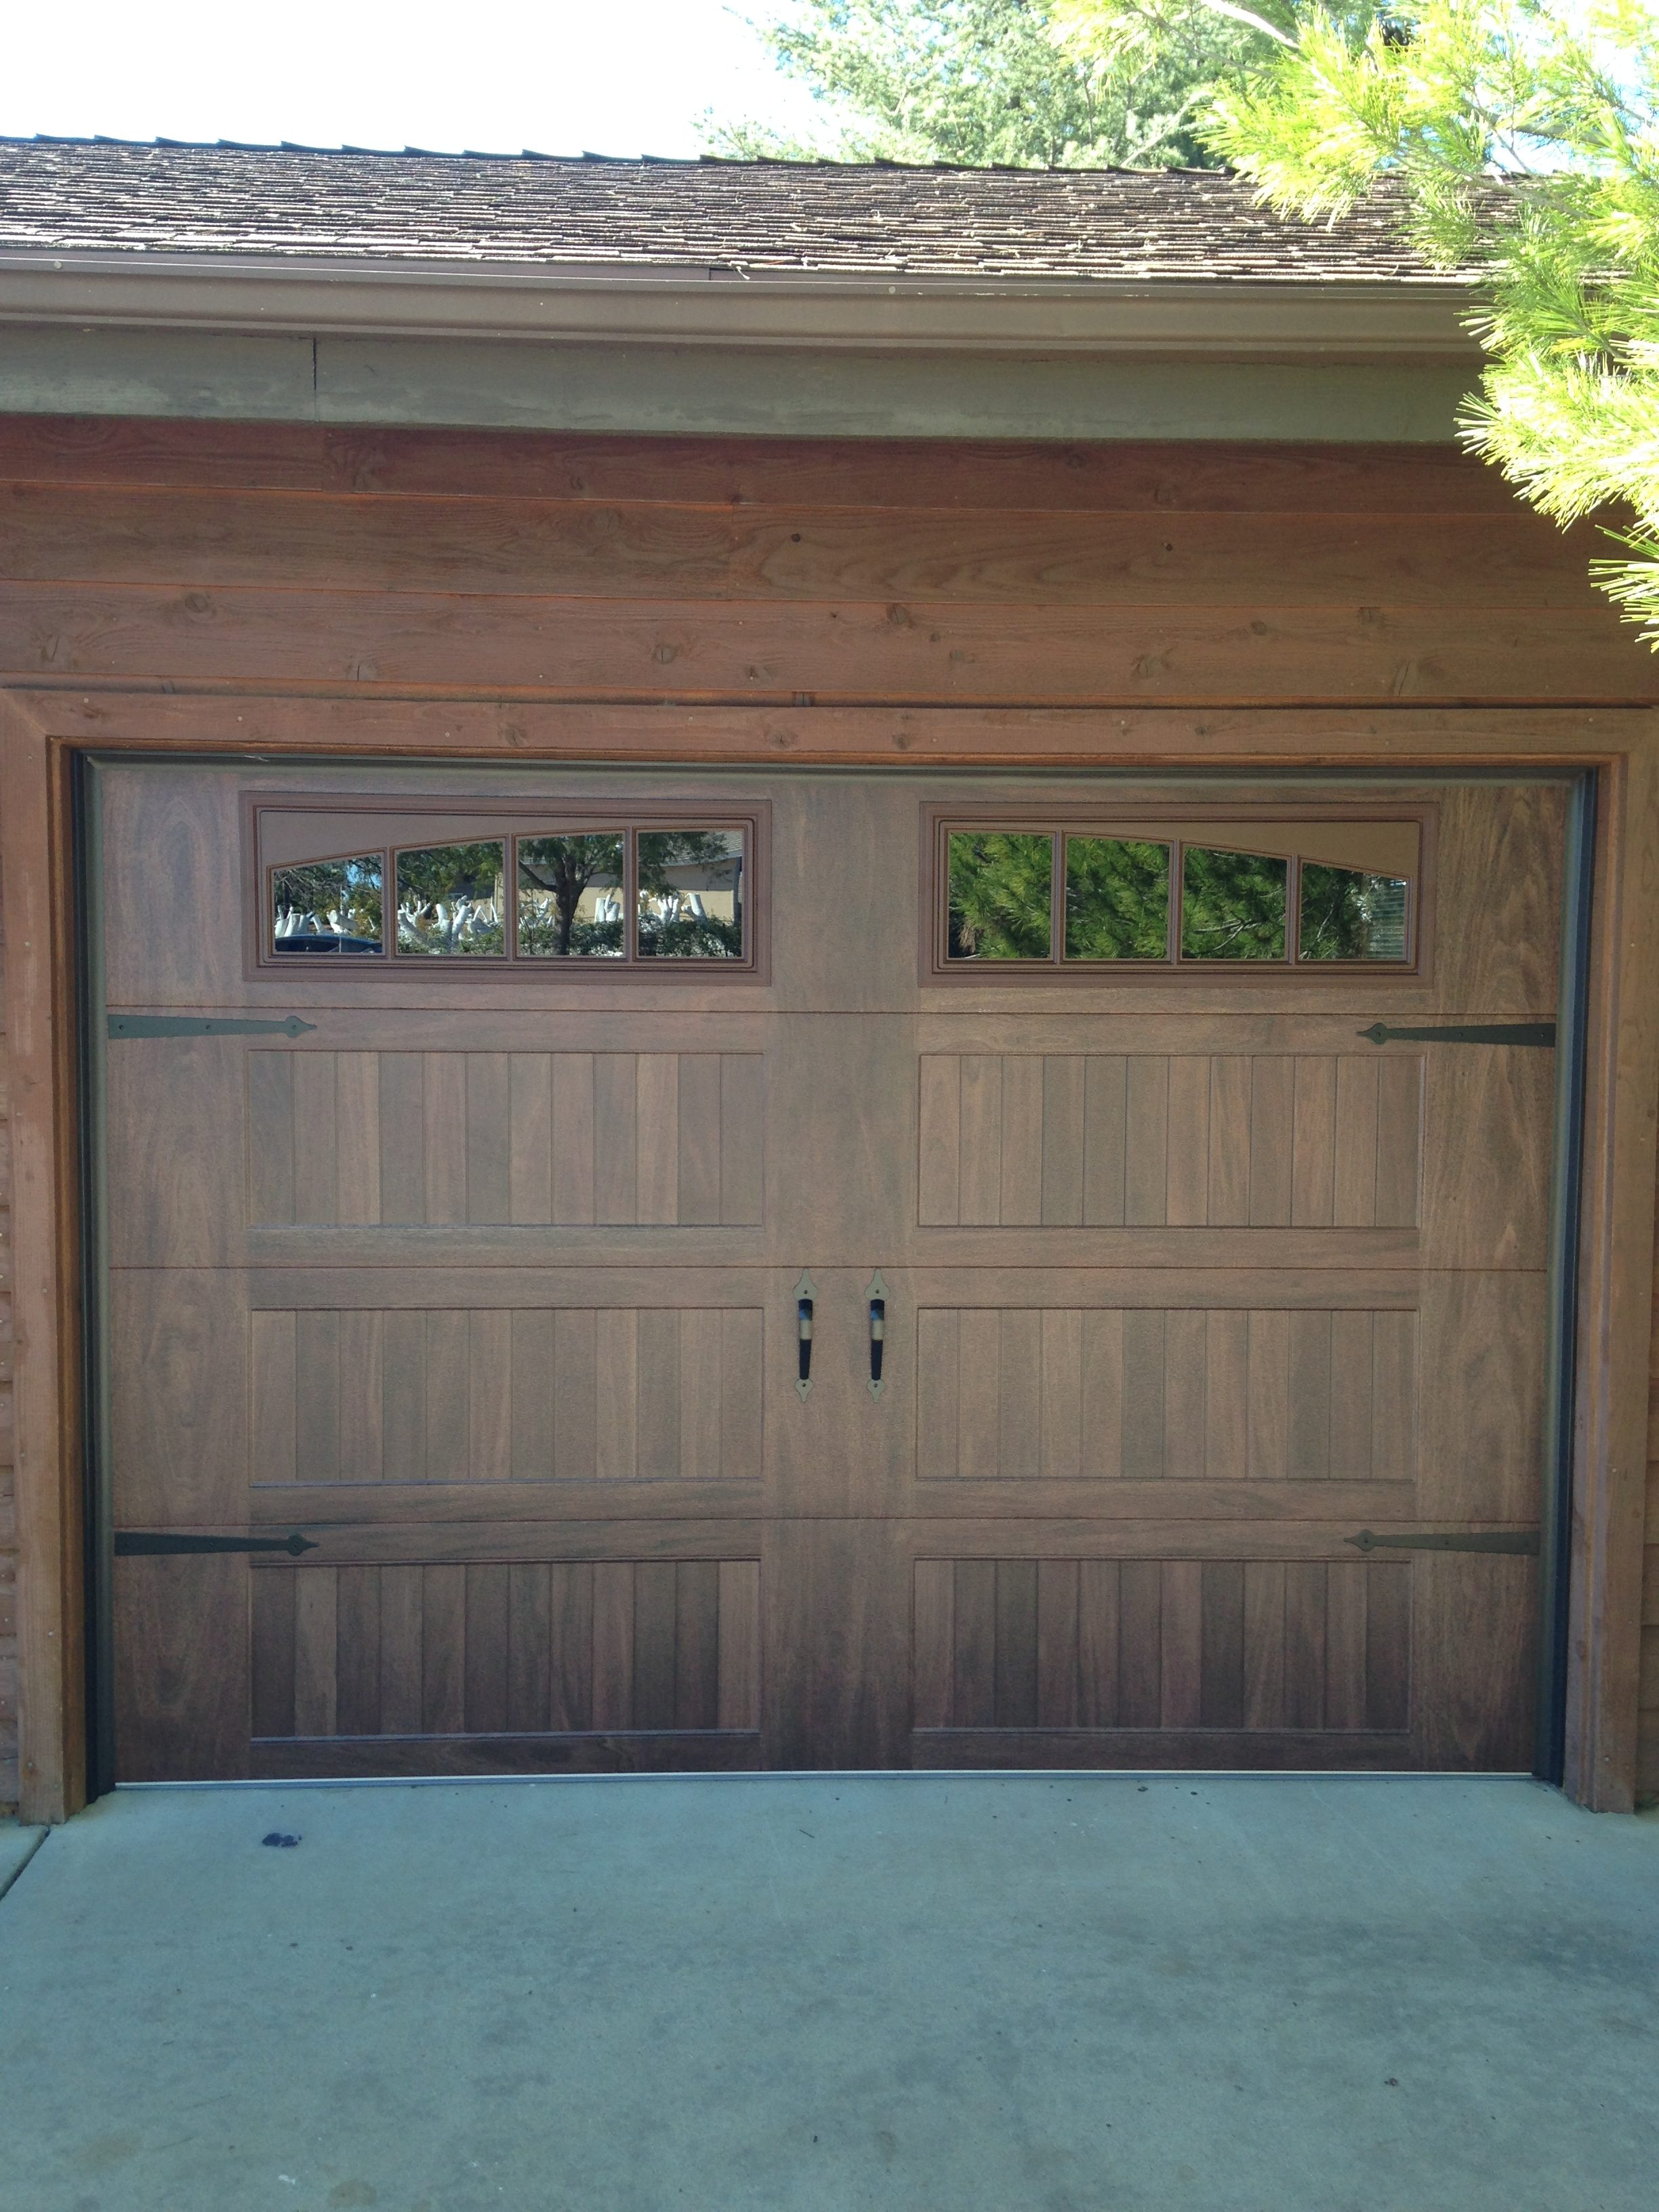 & CHI Woodtones and Plank Doors - Garage Door Man | Garage Door Man